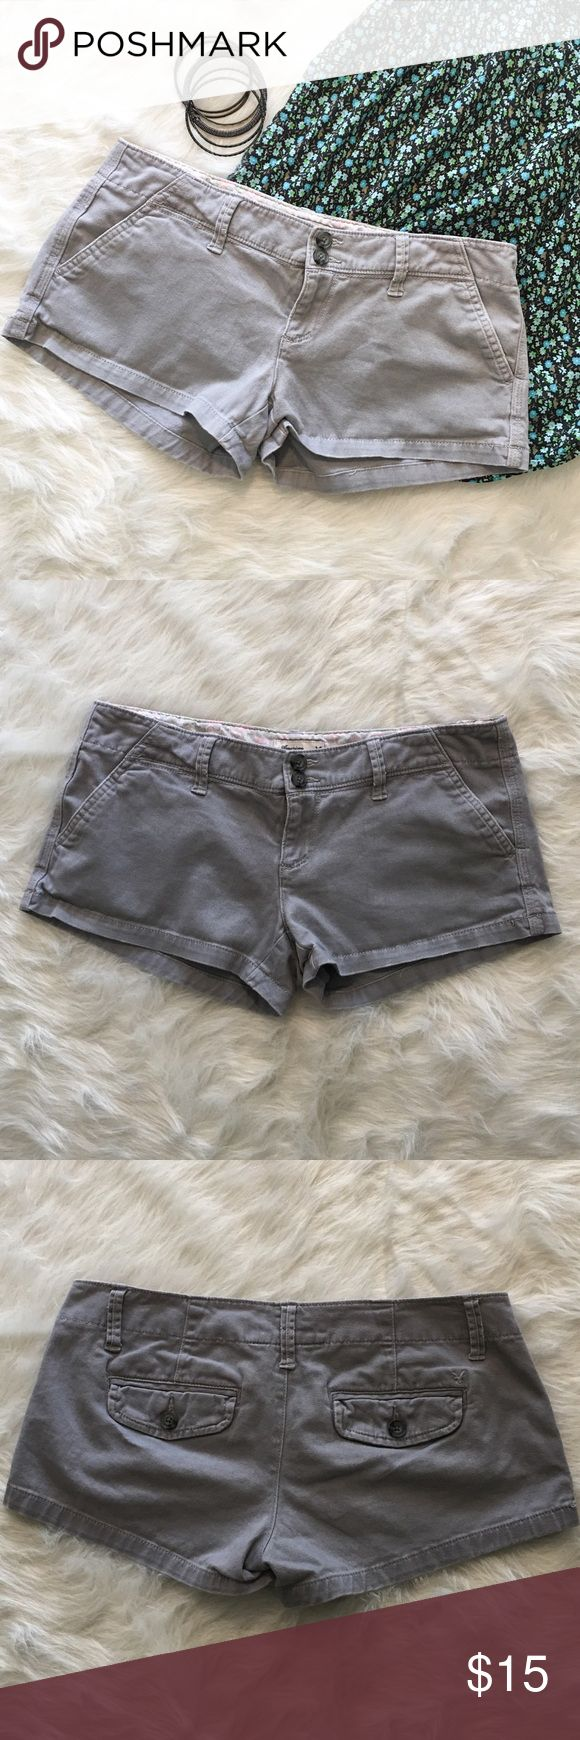 American Eagle Gray Shorts 2 Gently used American Eagle stretch shorts. Size 2. These were unbelievably comfortable! Unfortunately, I'm no longer a 2 after my pregnancy.                                                                ❌ No Trades ❌ No off Poshmark transactions ❤️ Bundle and save 📬 Fast shipper ❤️ I love reasonable offers American Eagle Outfitters Shorts